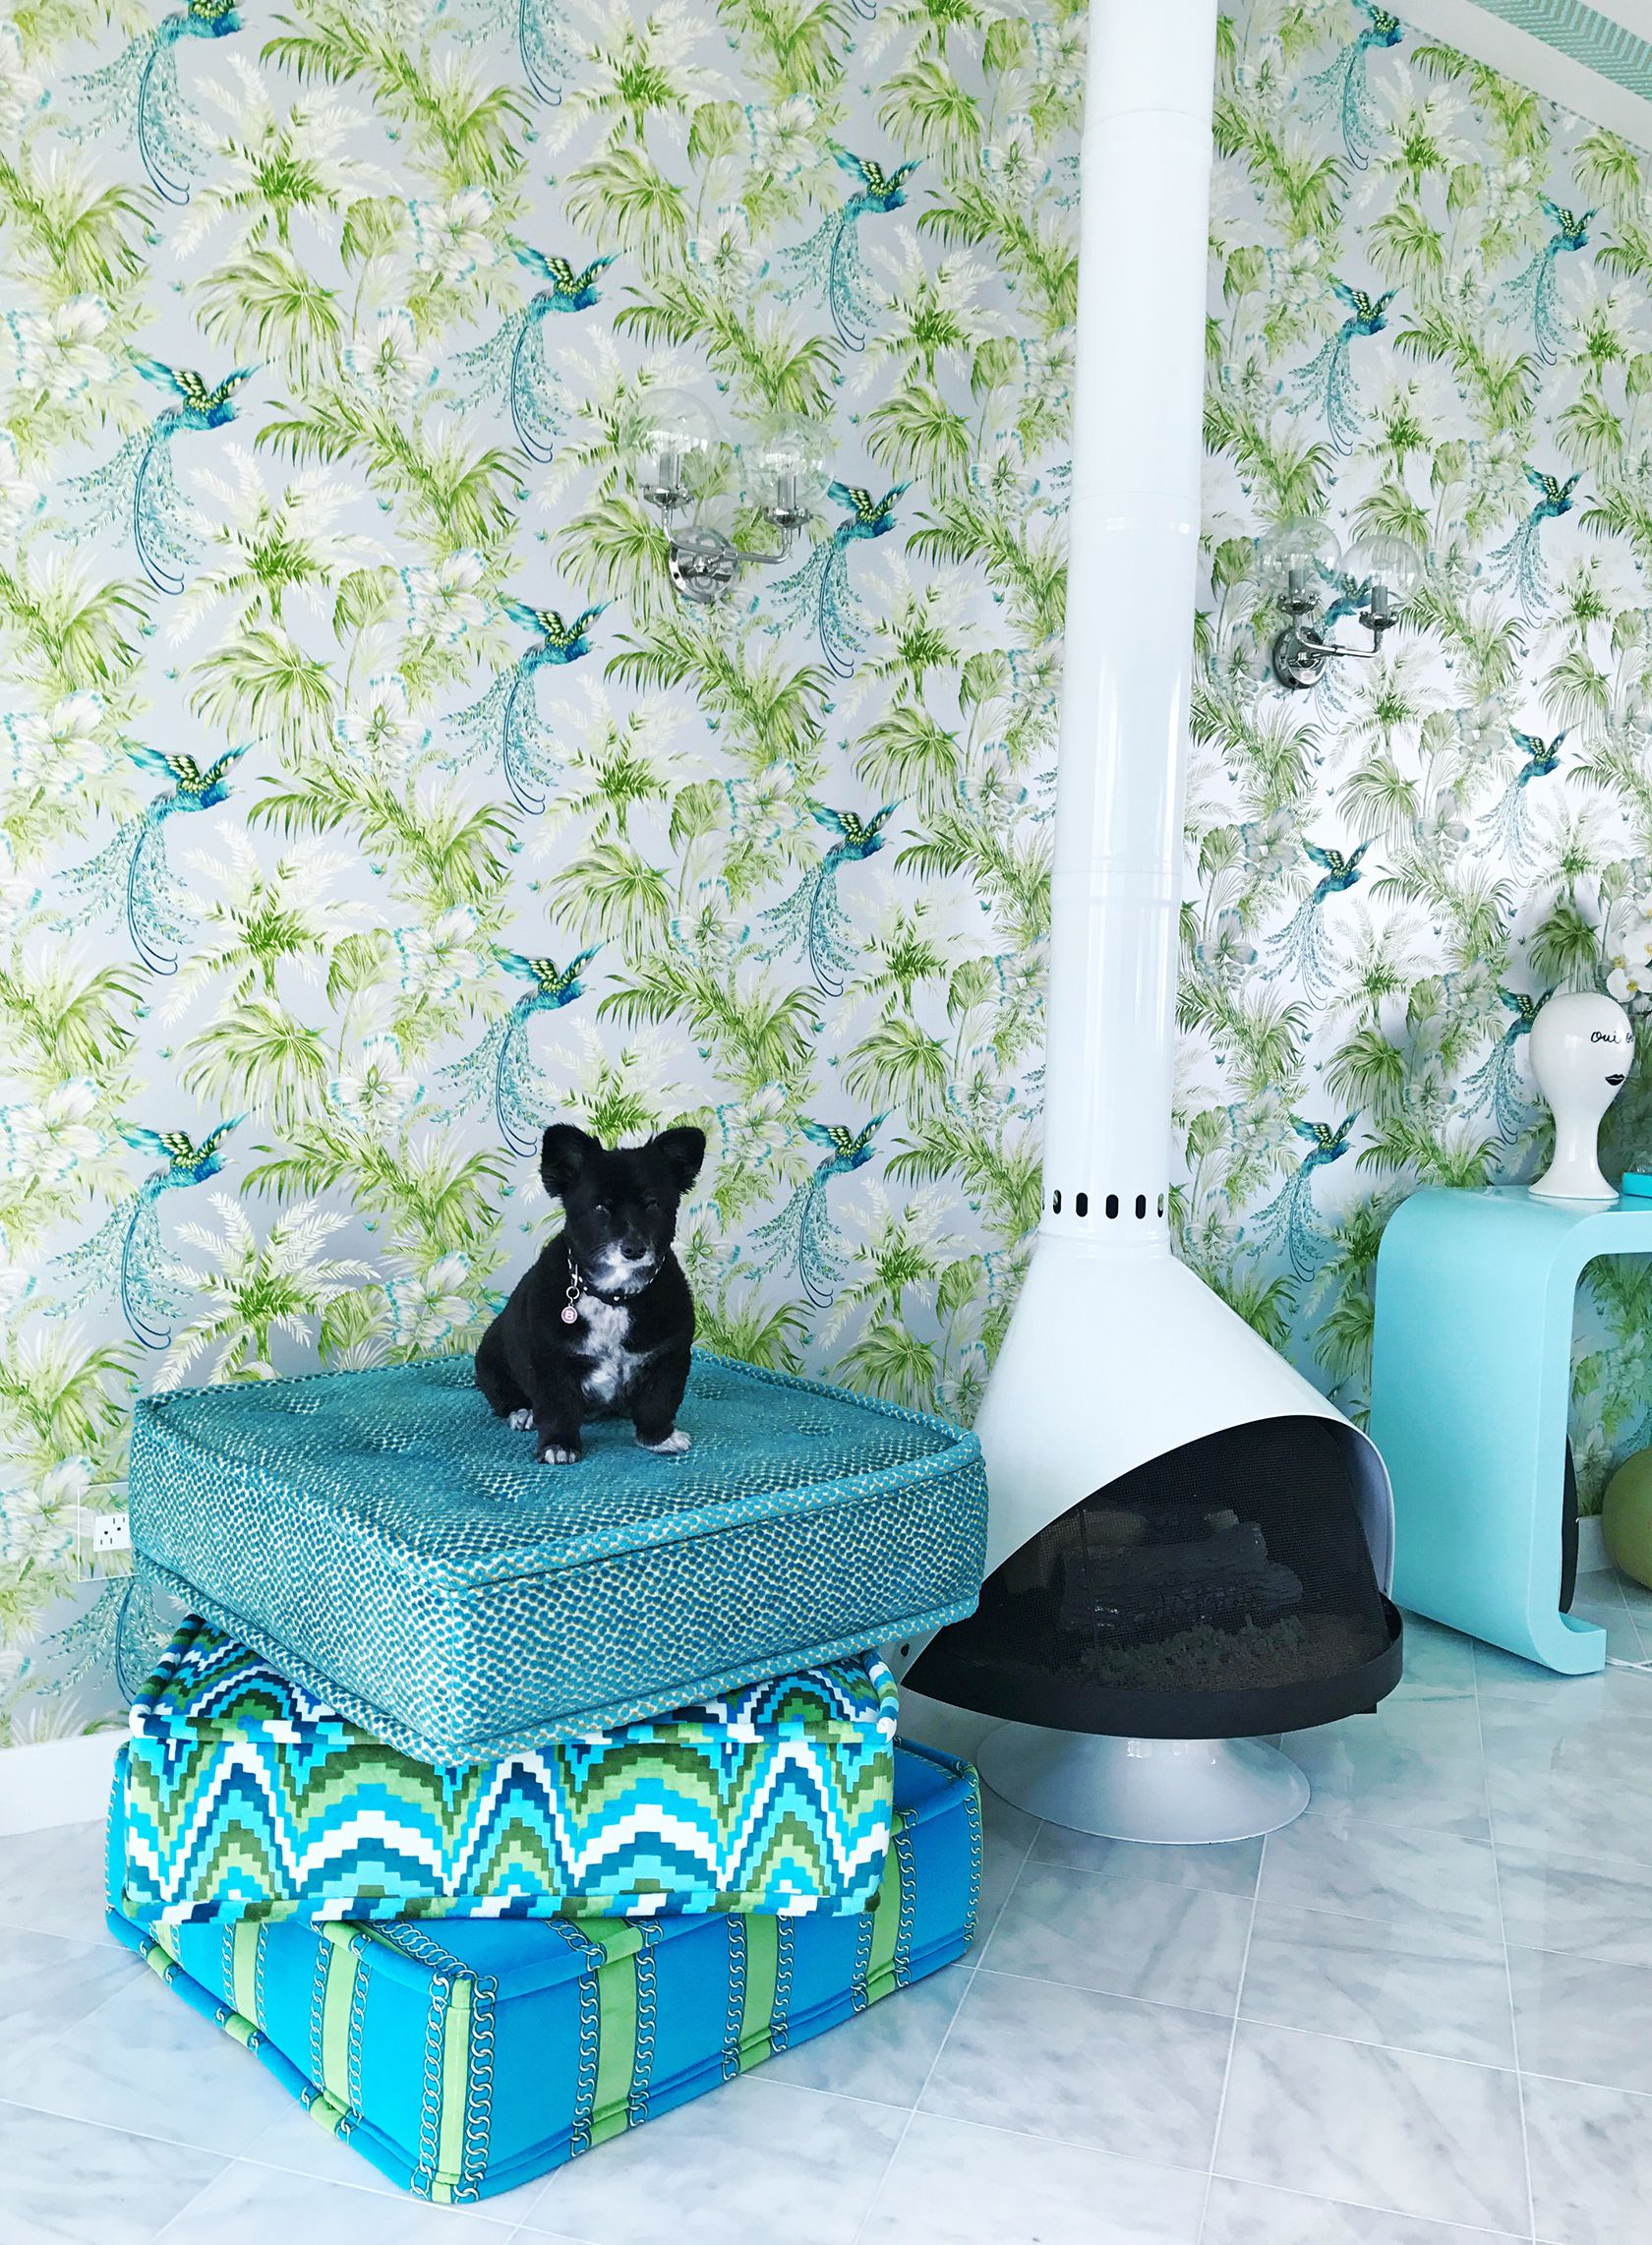 Sydne Style Shares Home Decor Ideas With Bird Wallpaper In Mid Century  Modern Design #palmsprings